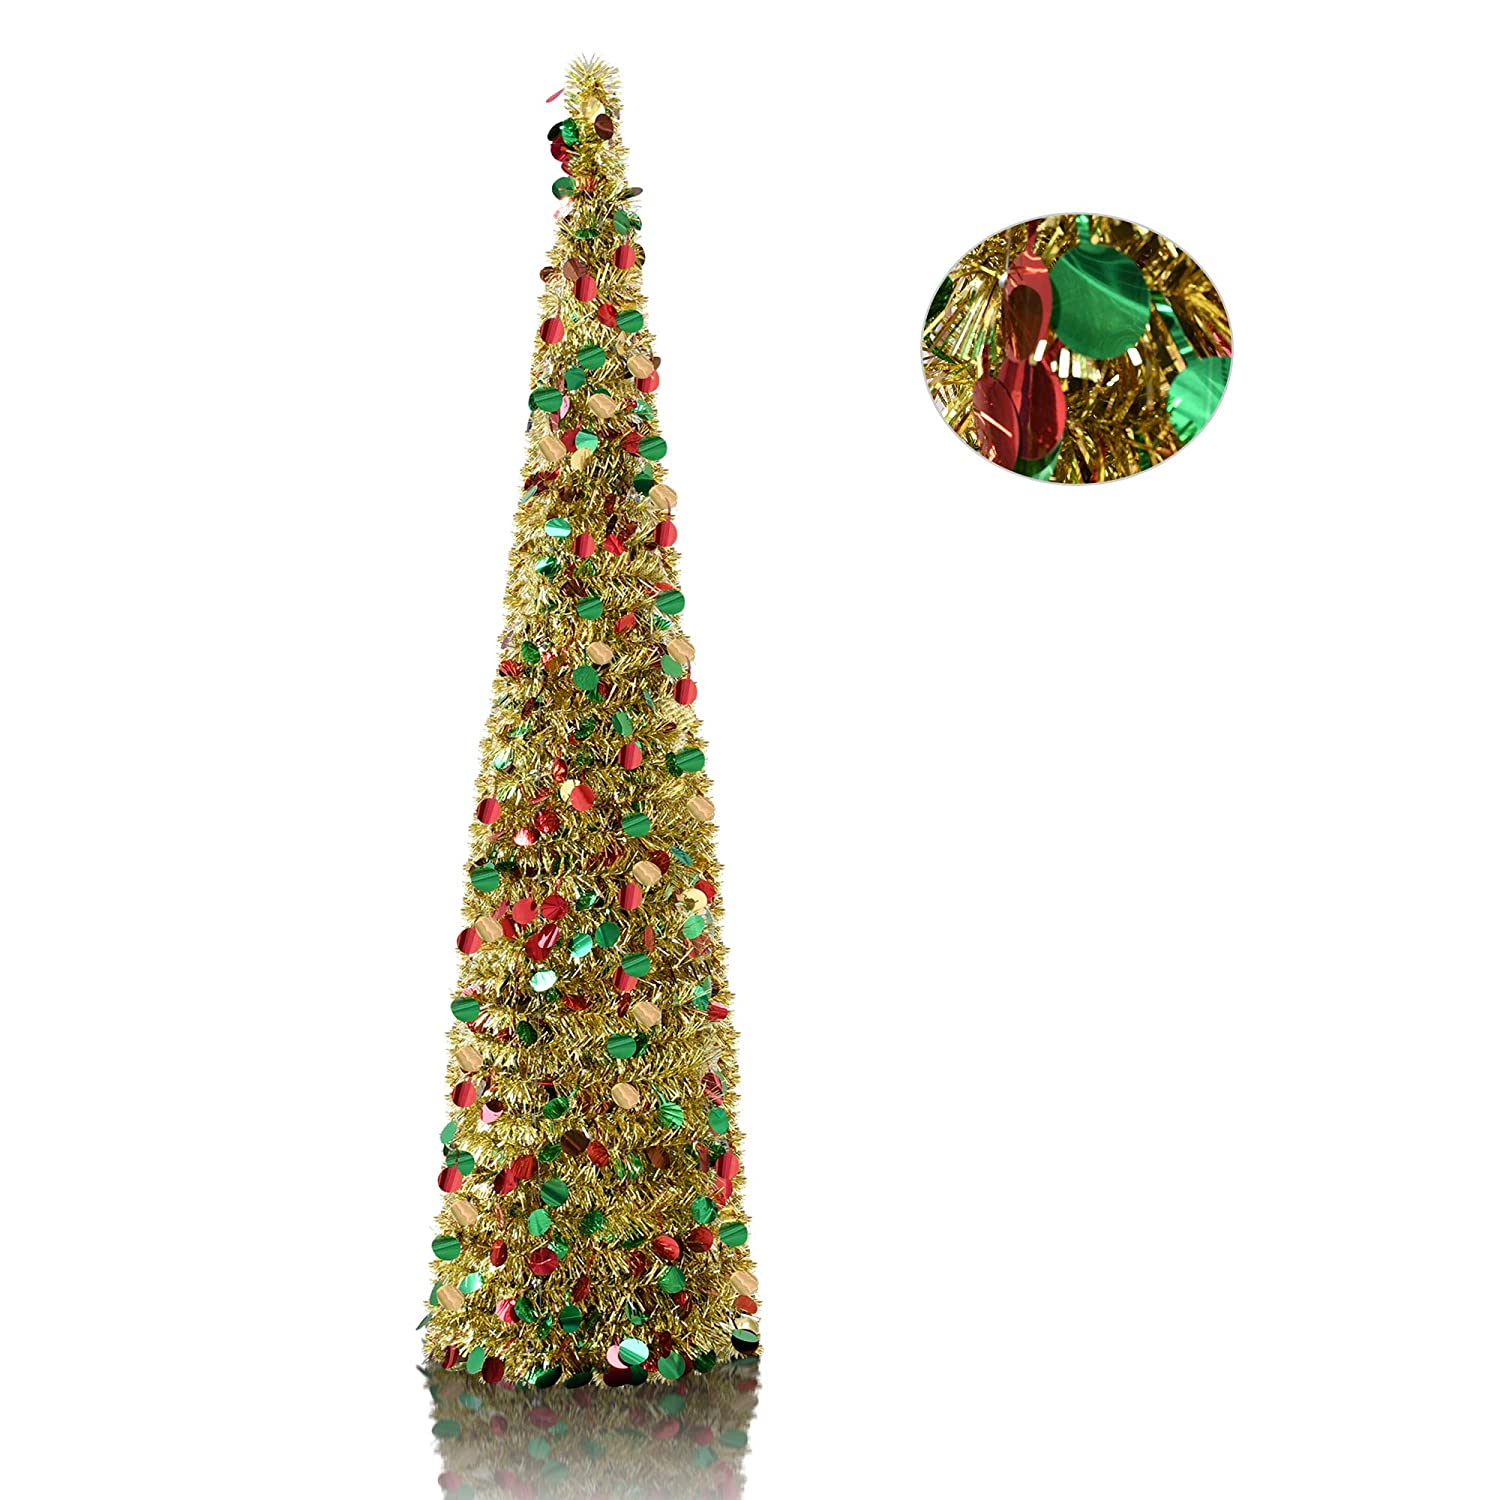 Christmas Trees For Small Apartments.Yuqi 5 Gold Point Pop Up Artificial Christmas Tree Collapsible Pencil Christmas Trees For Apartments Dorm Rooms Fireplace Or Party